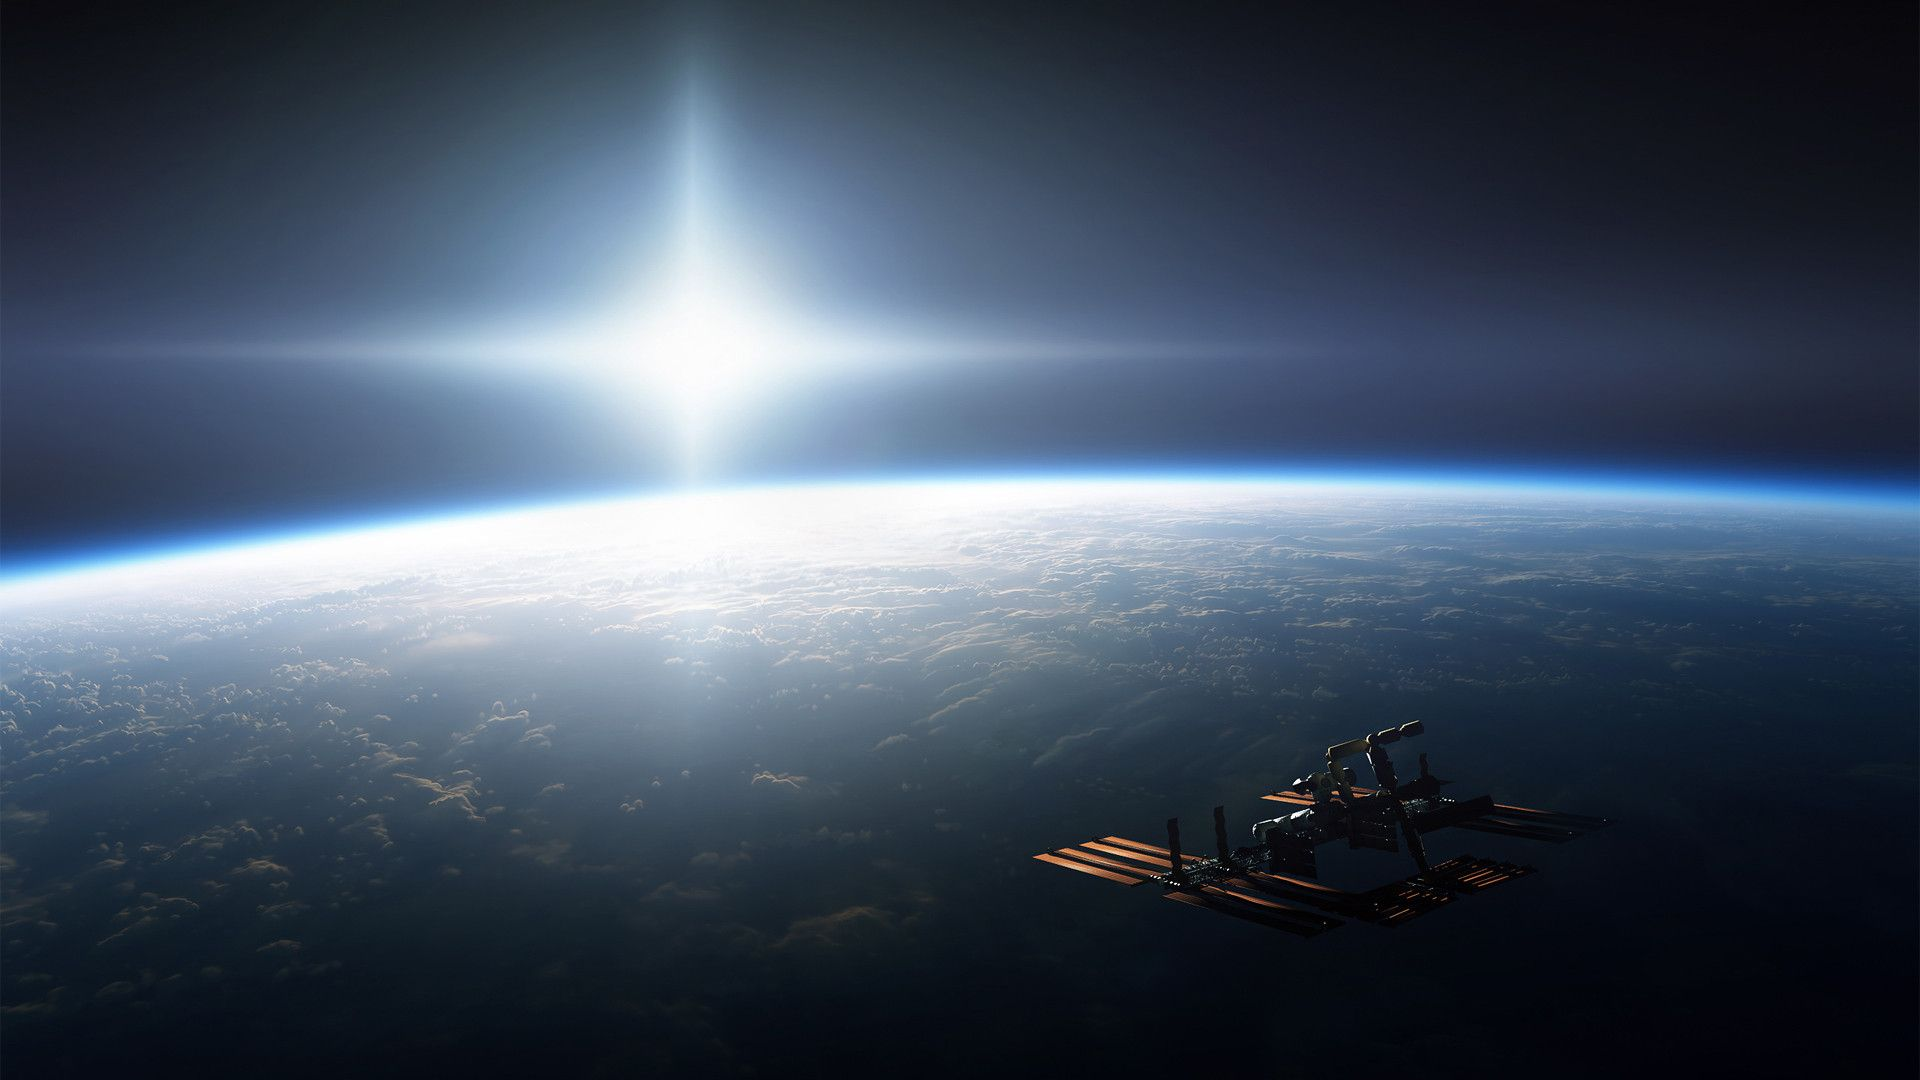 575 Wallpapers All 1080p No Watermarks Post Wallpaper Earth Earth Pictures Nasa Wallpaper